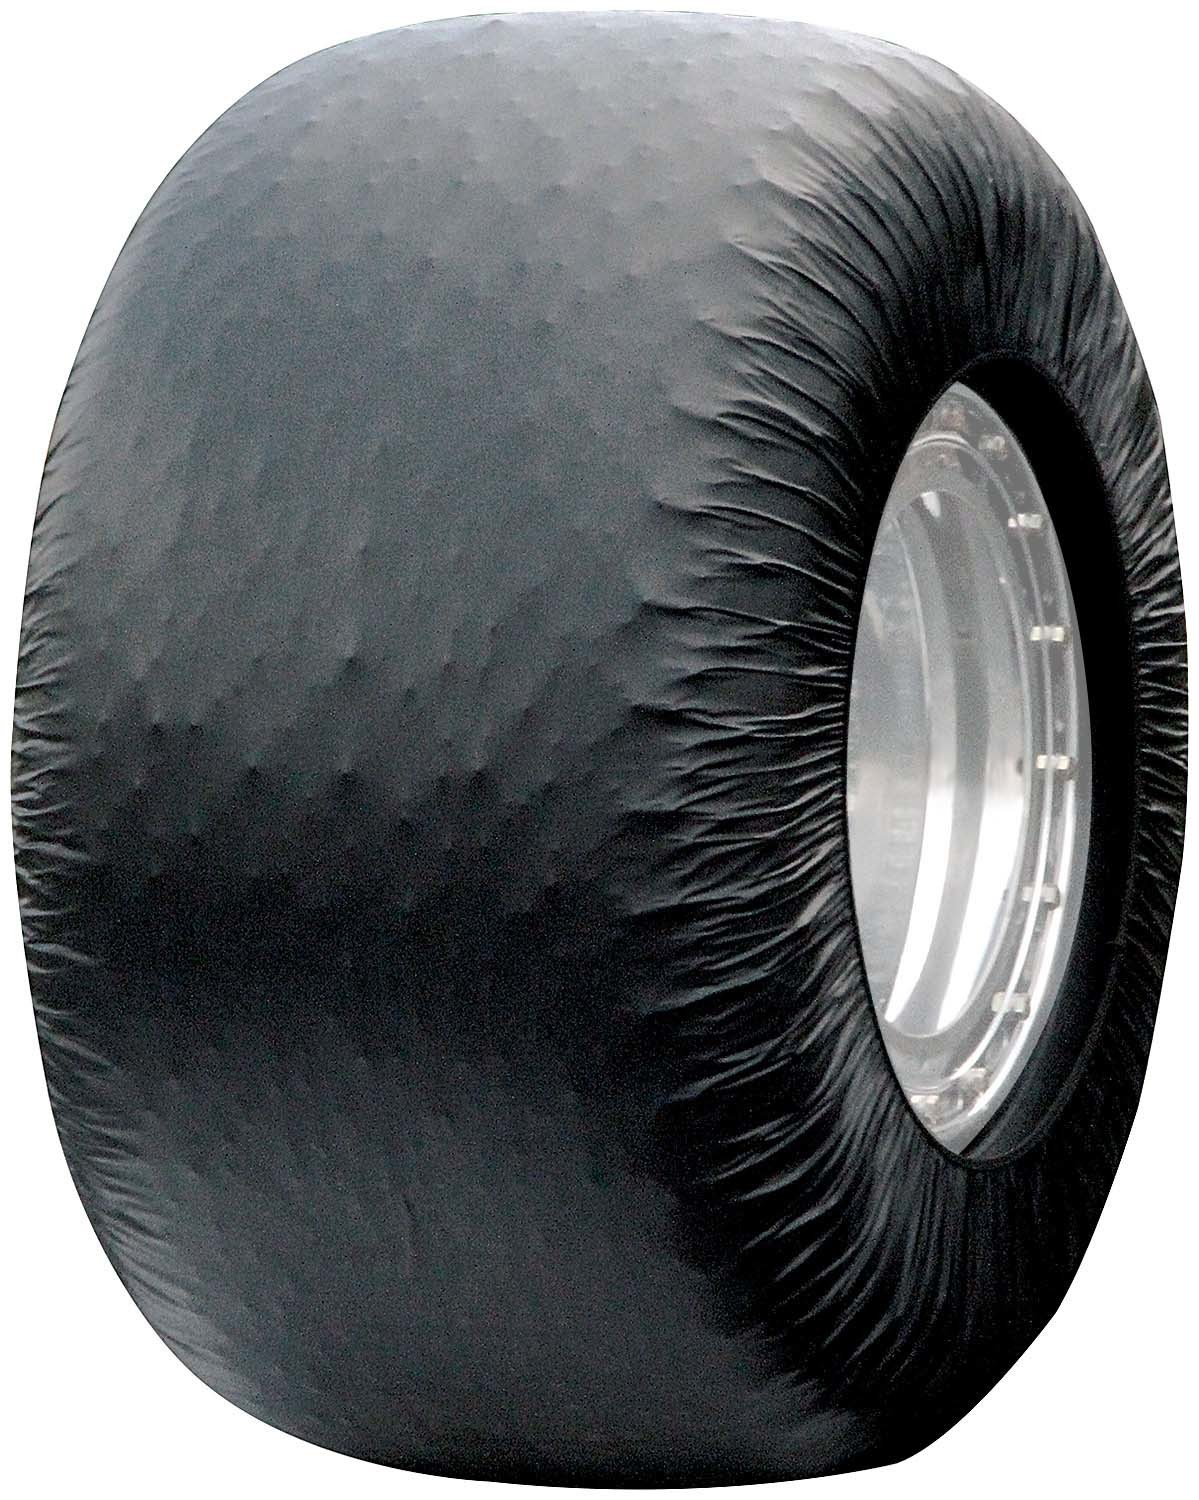 Allstar Performance Easy Wrap Tire Covers 12pk LM92